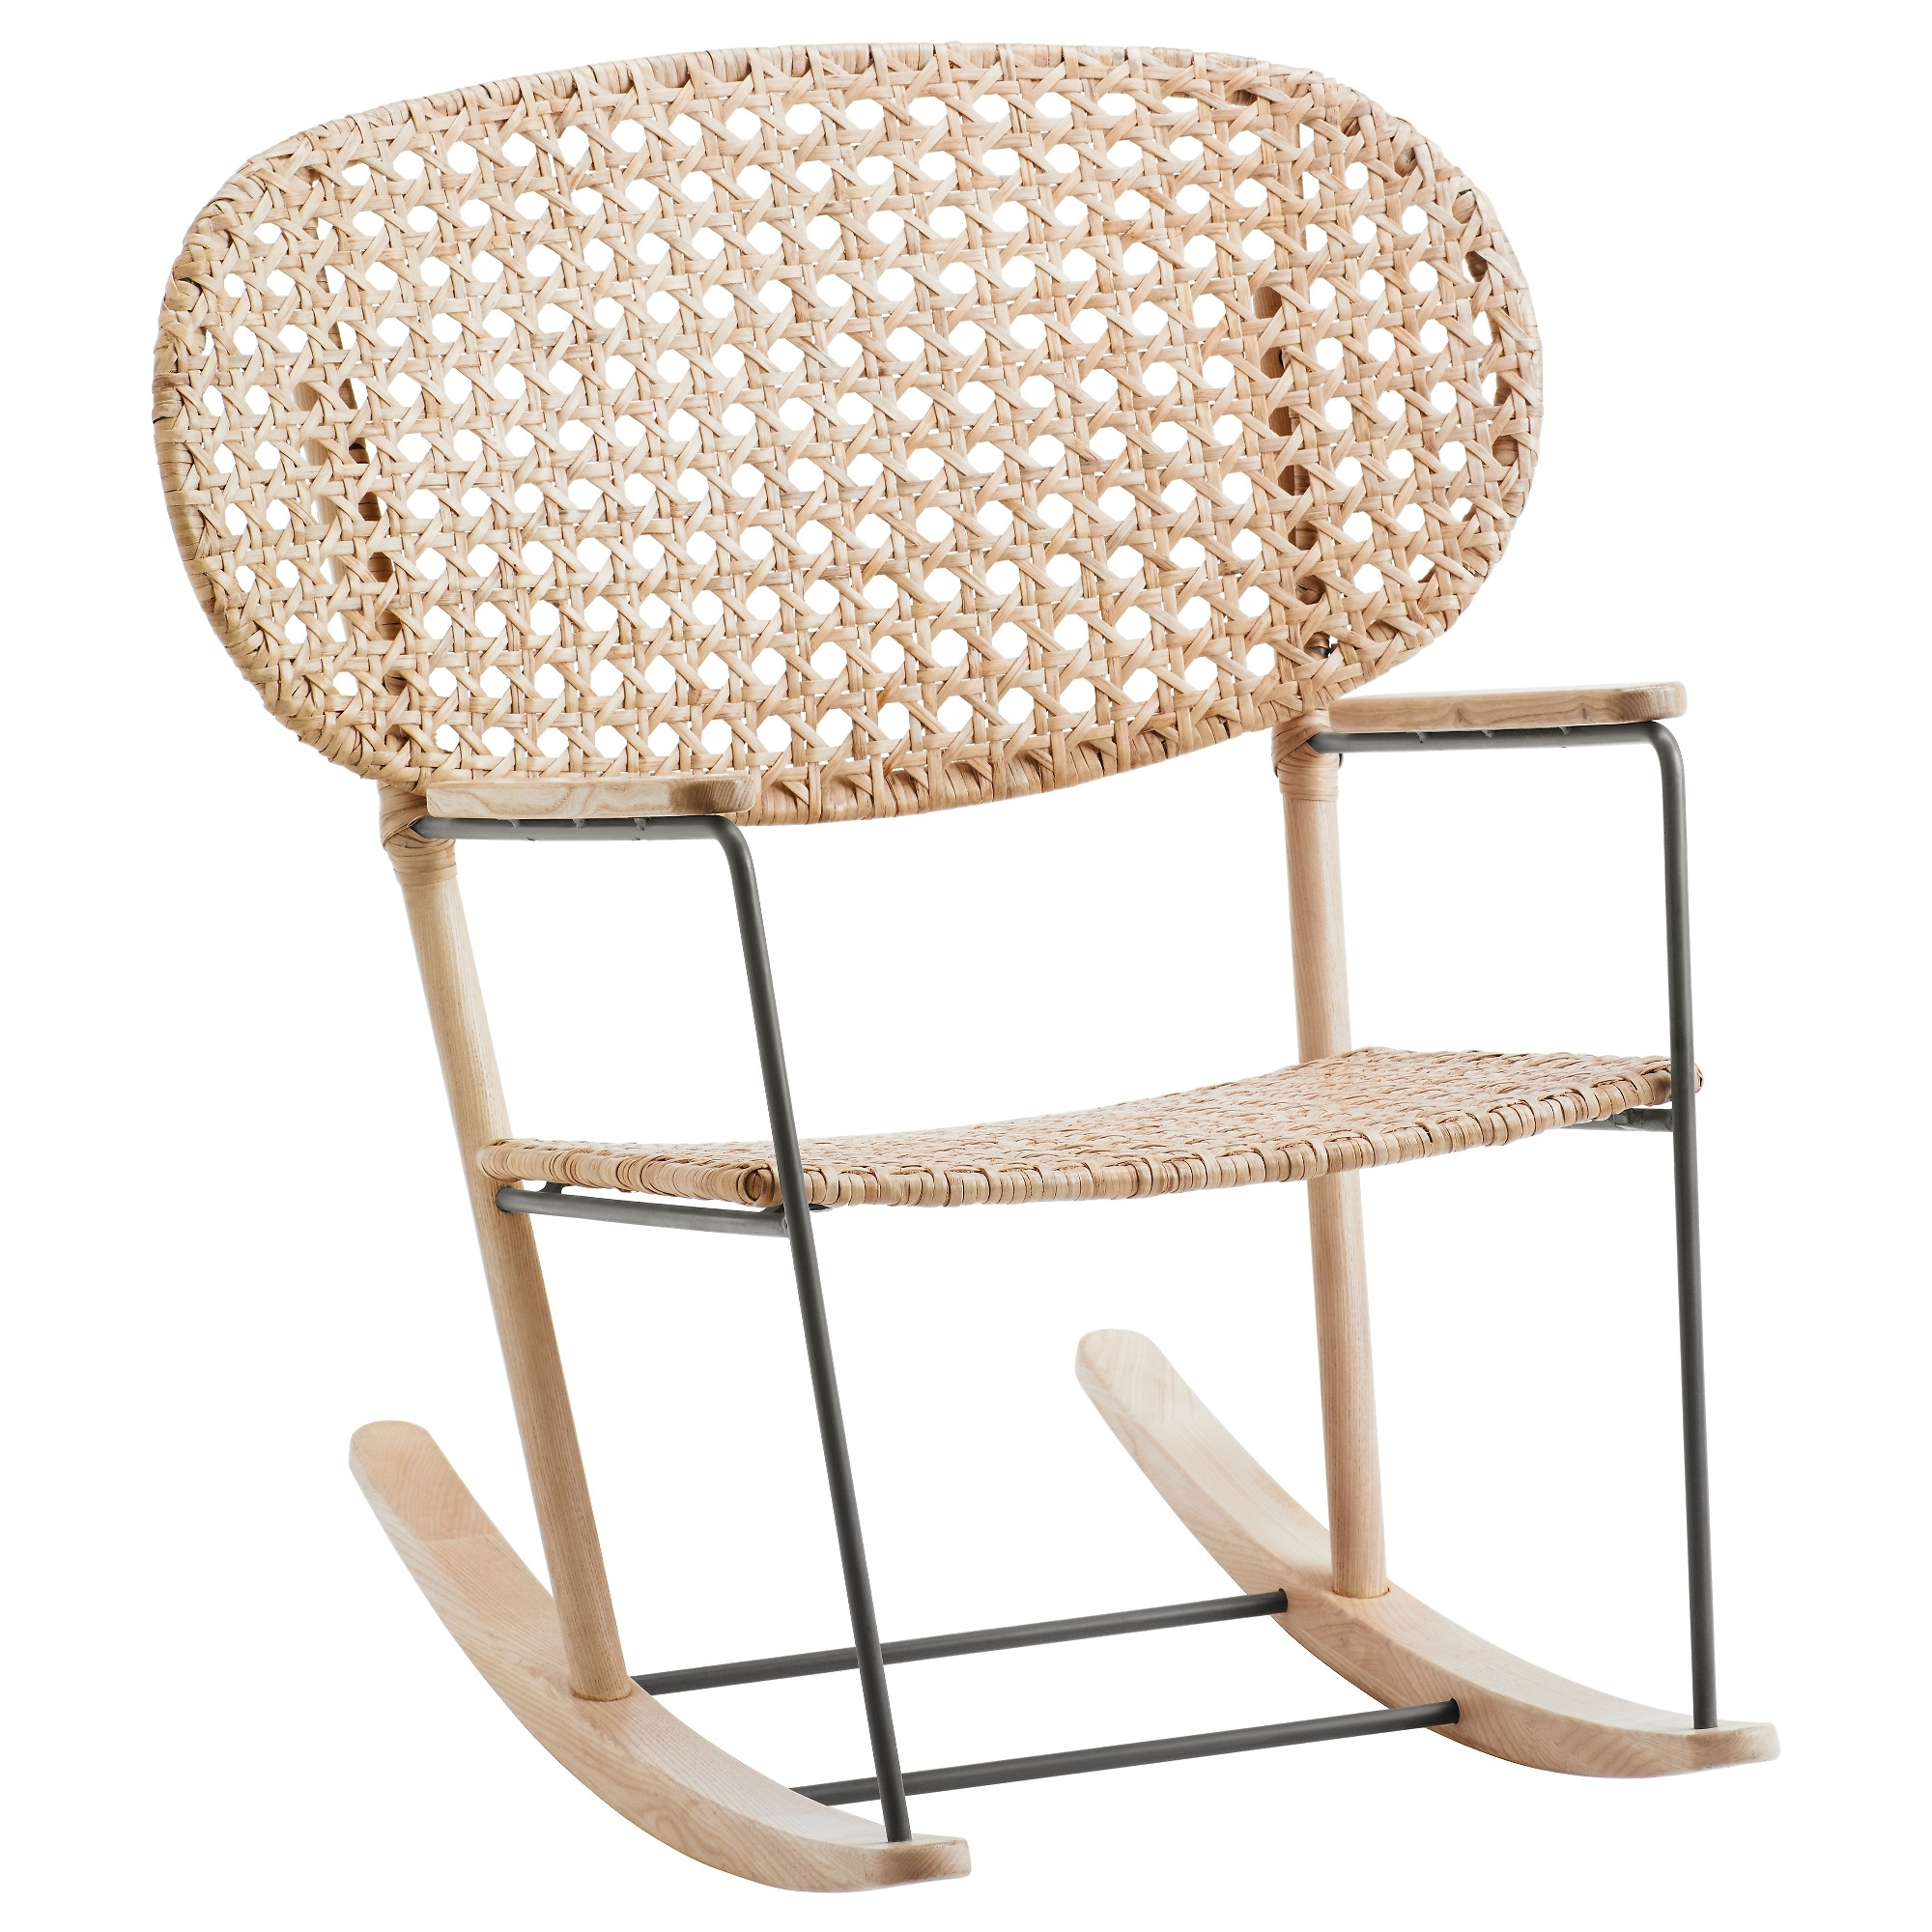 Widely Used Ikea Latvia – Shop For Furniture, Lighting, Home Accessories & More With Regard To Ikea Rocking Chairs (View 6 of 15)